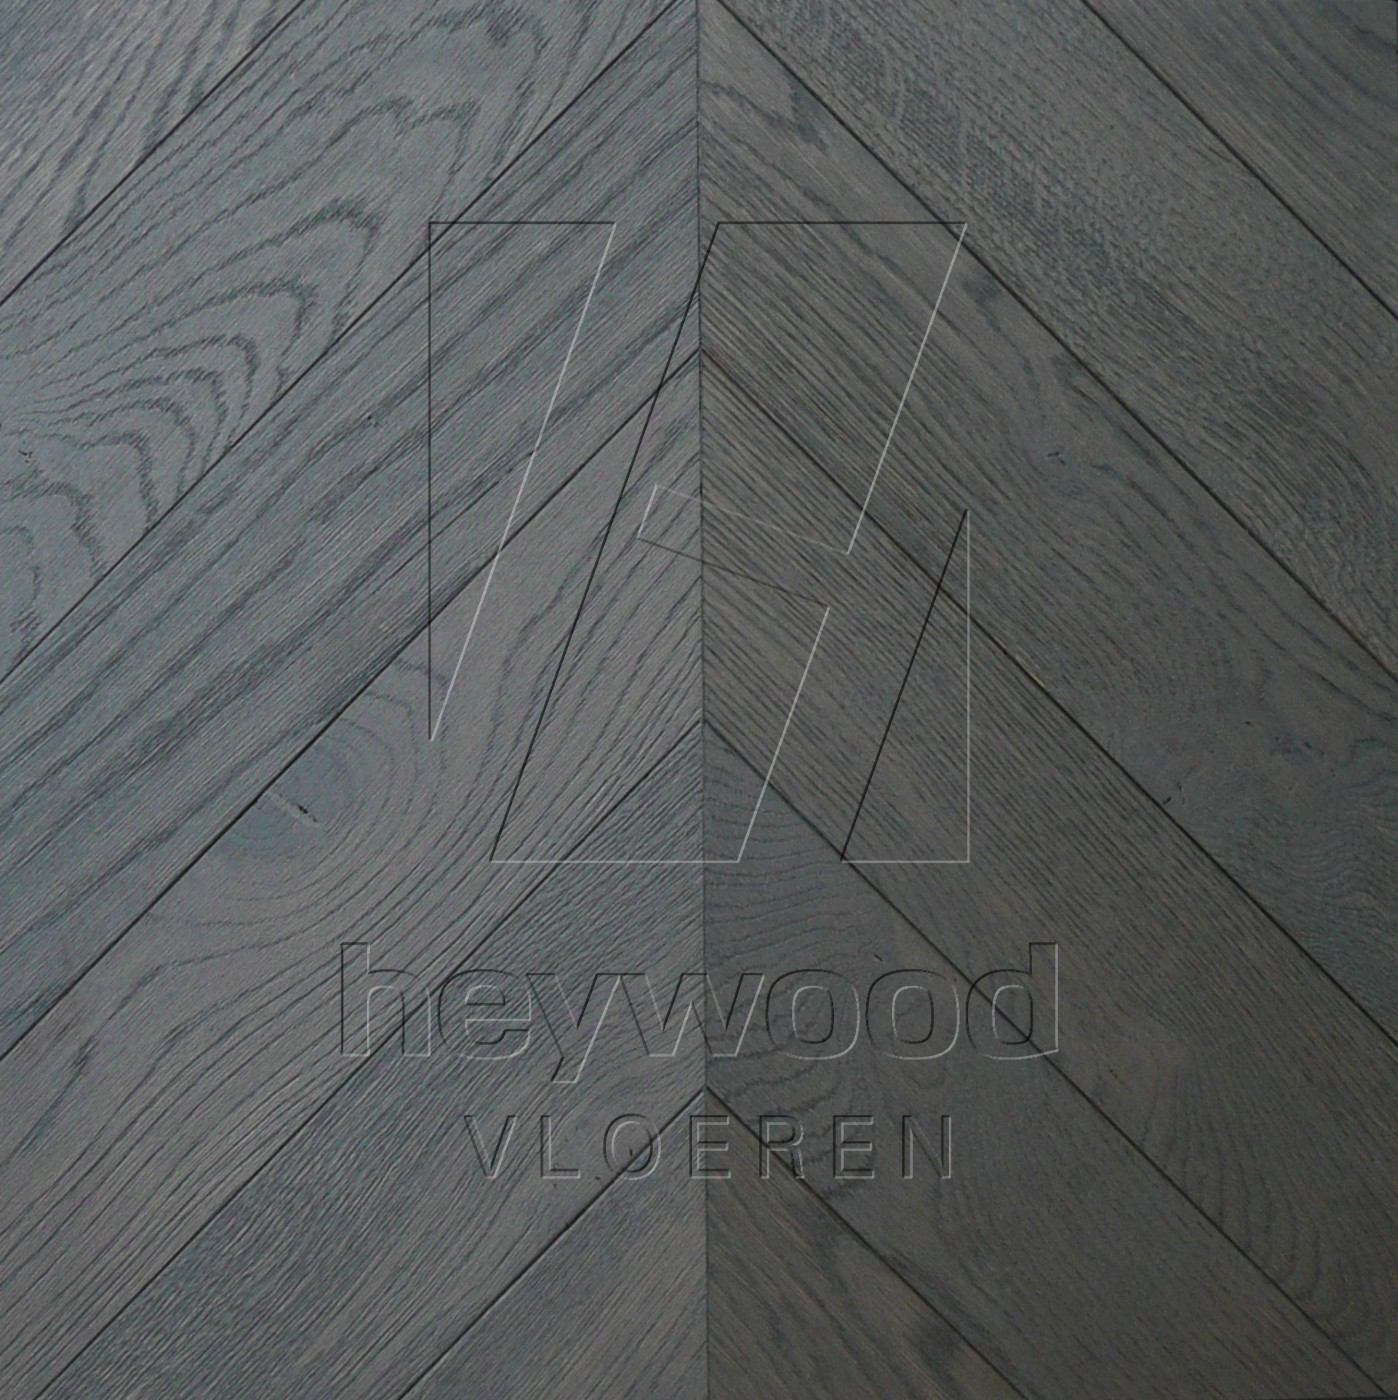 'Highlands coloured' Chevron 45°, Bespoke Character in Chevron of Pattern & Panel Floors